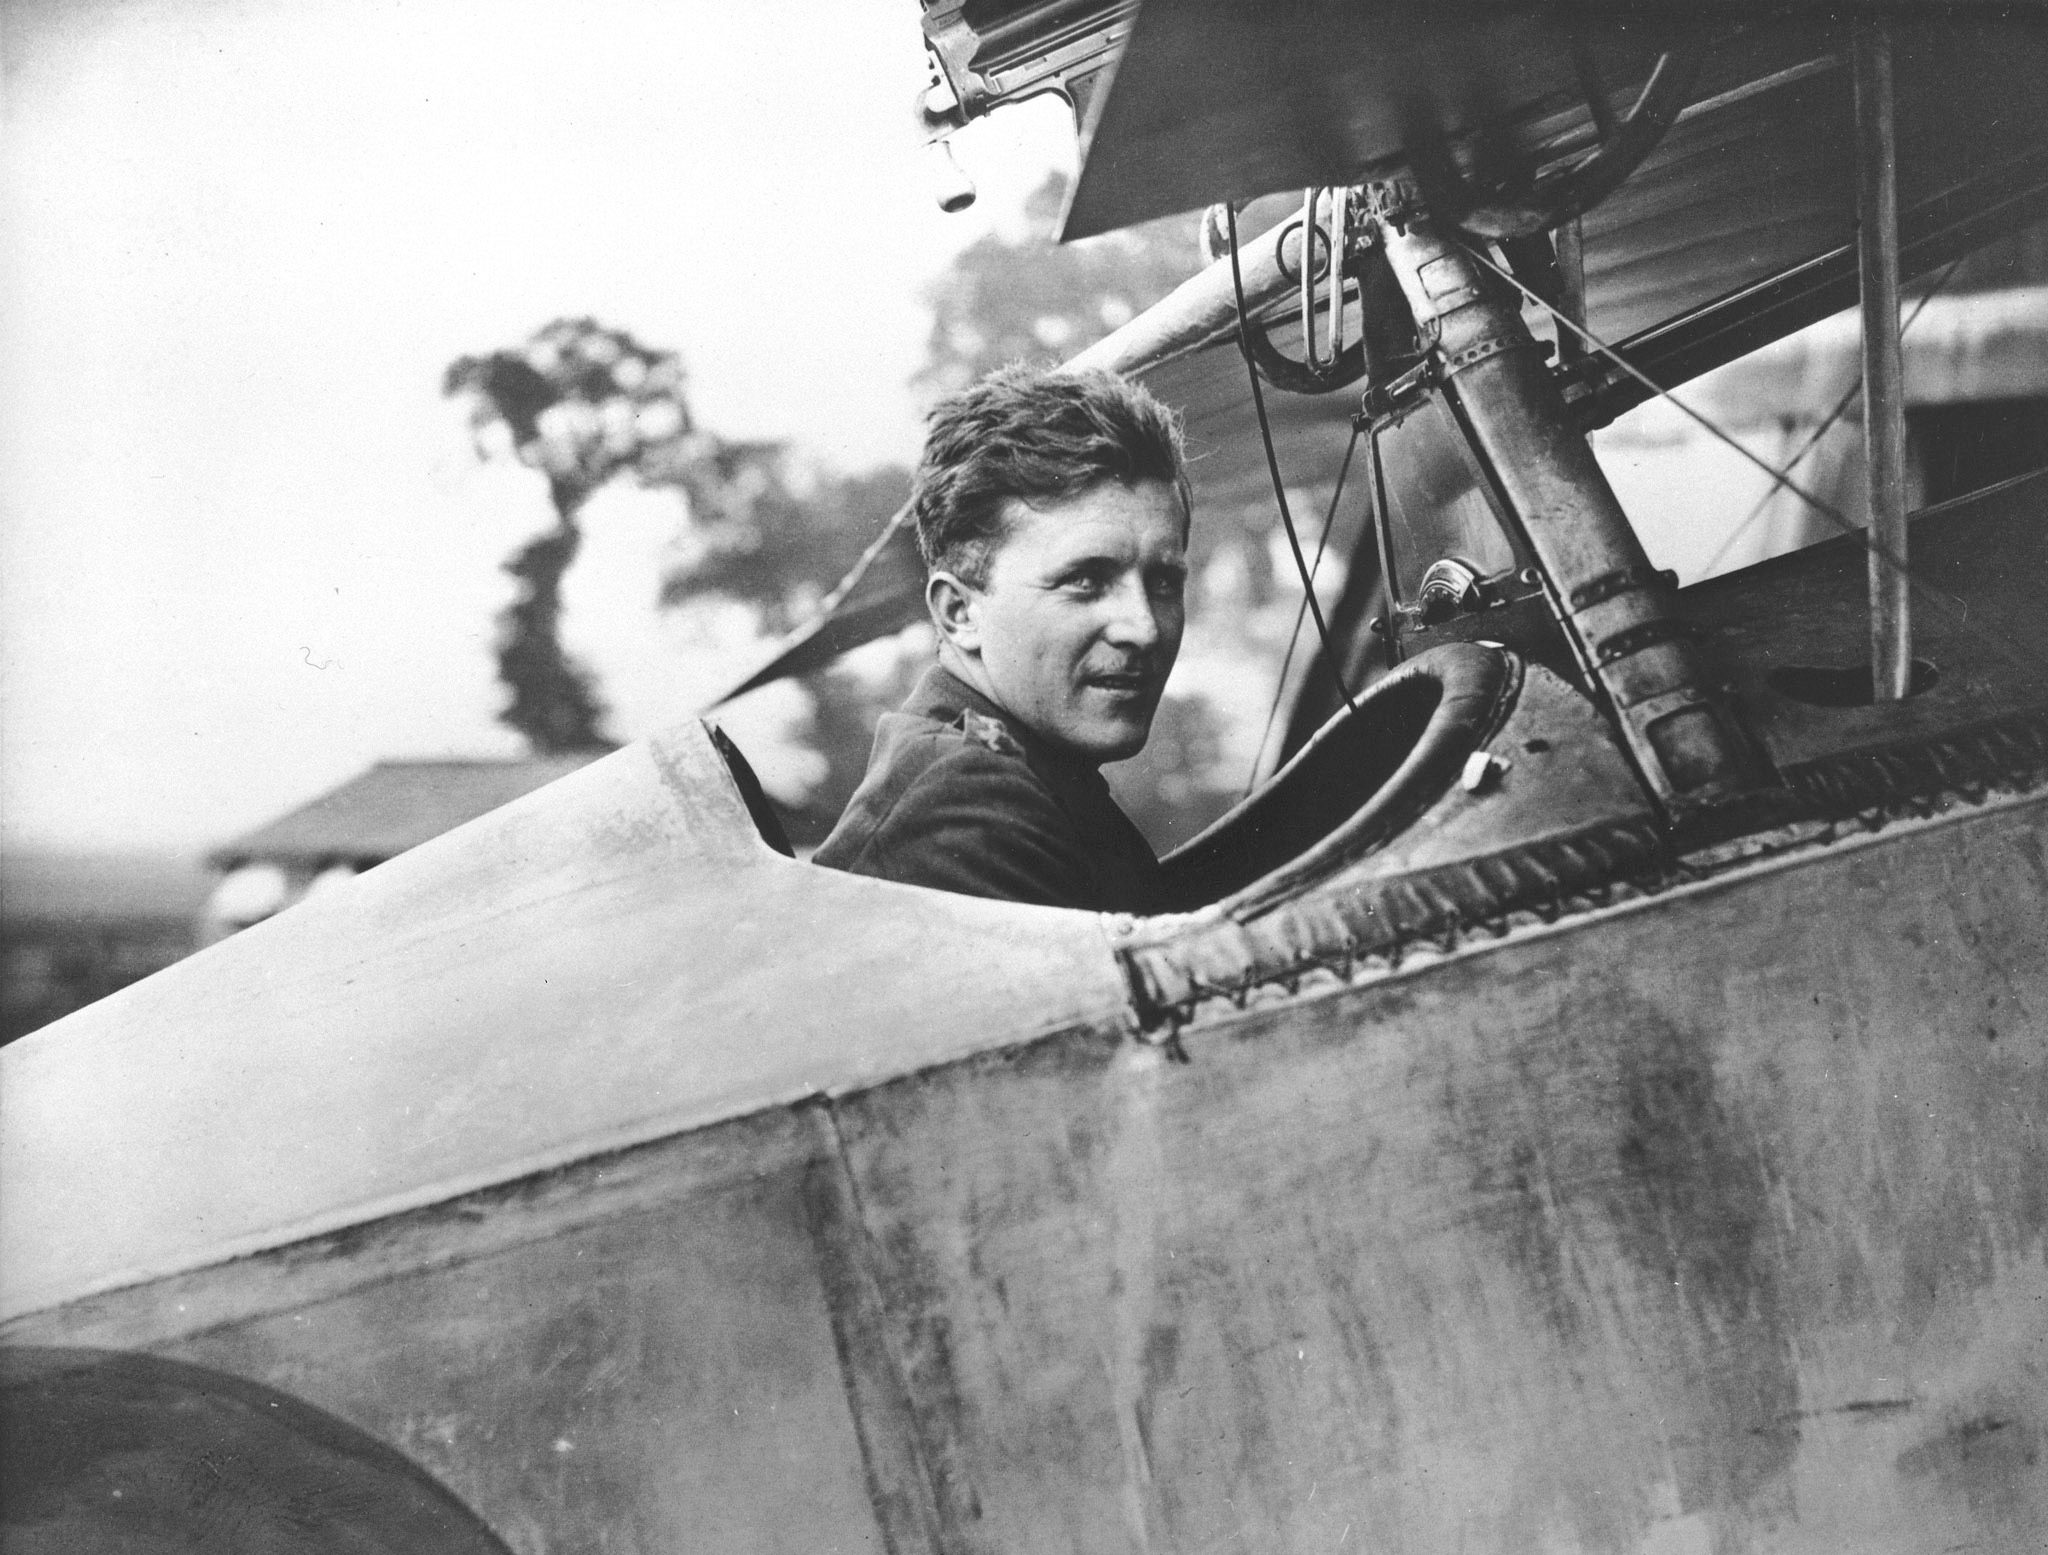 Captain William A. Bishop, seated in the cockpit of his Nieuport Scout, on August 6, 1917, while he was with No. 60 Squadron of the Royal Flying Corps. PHOTO: DND Archives, AH-407A